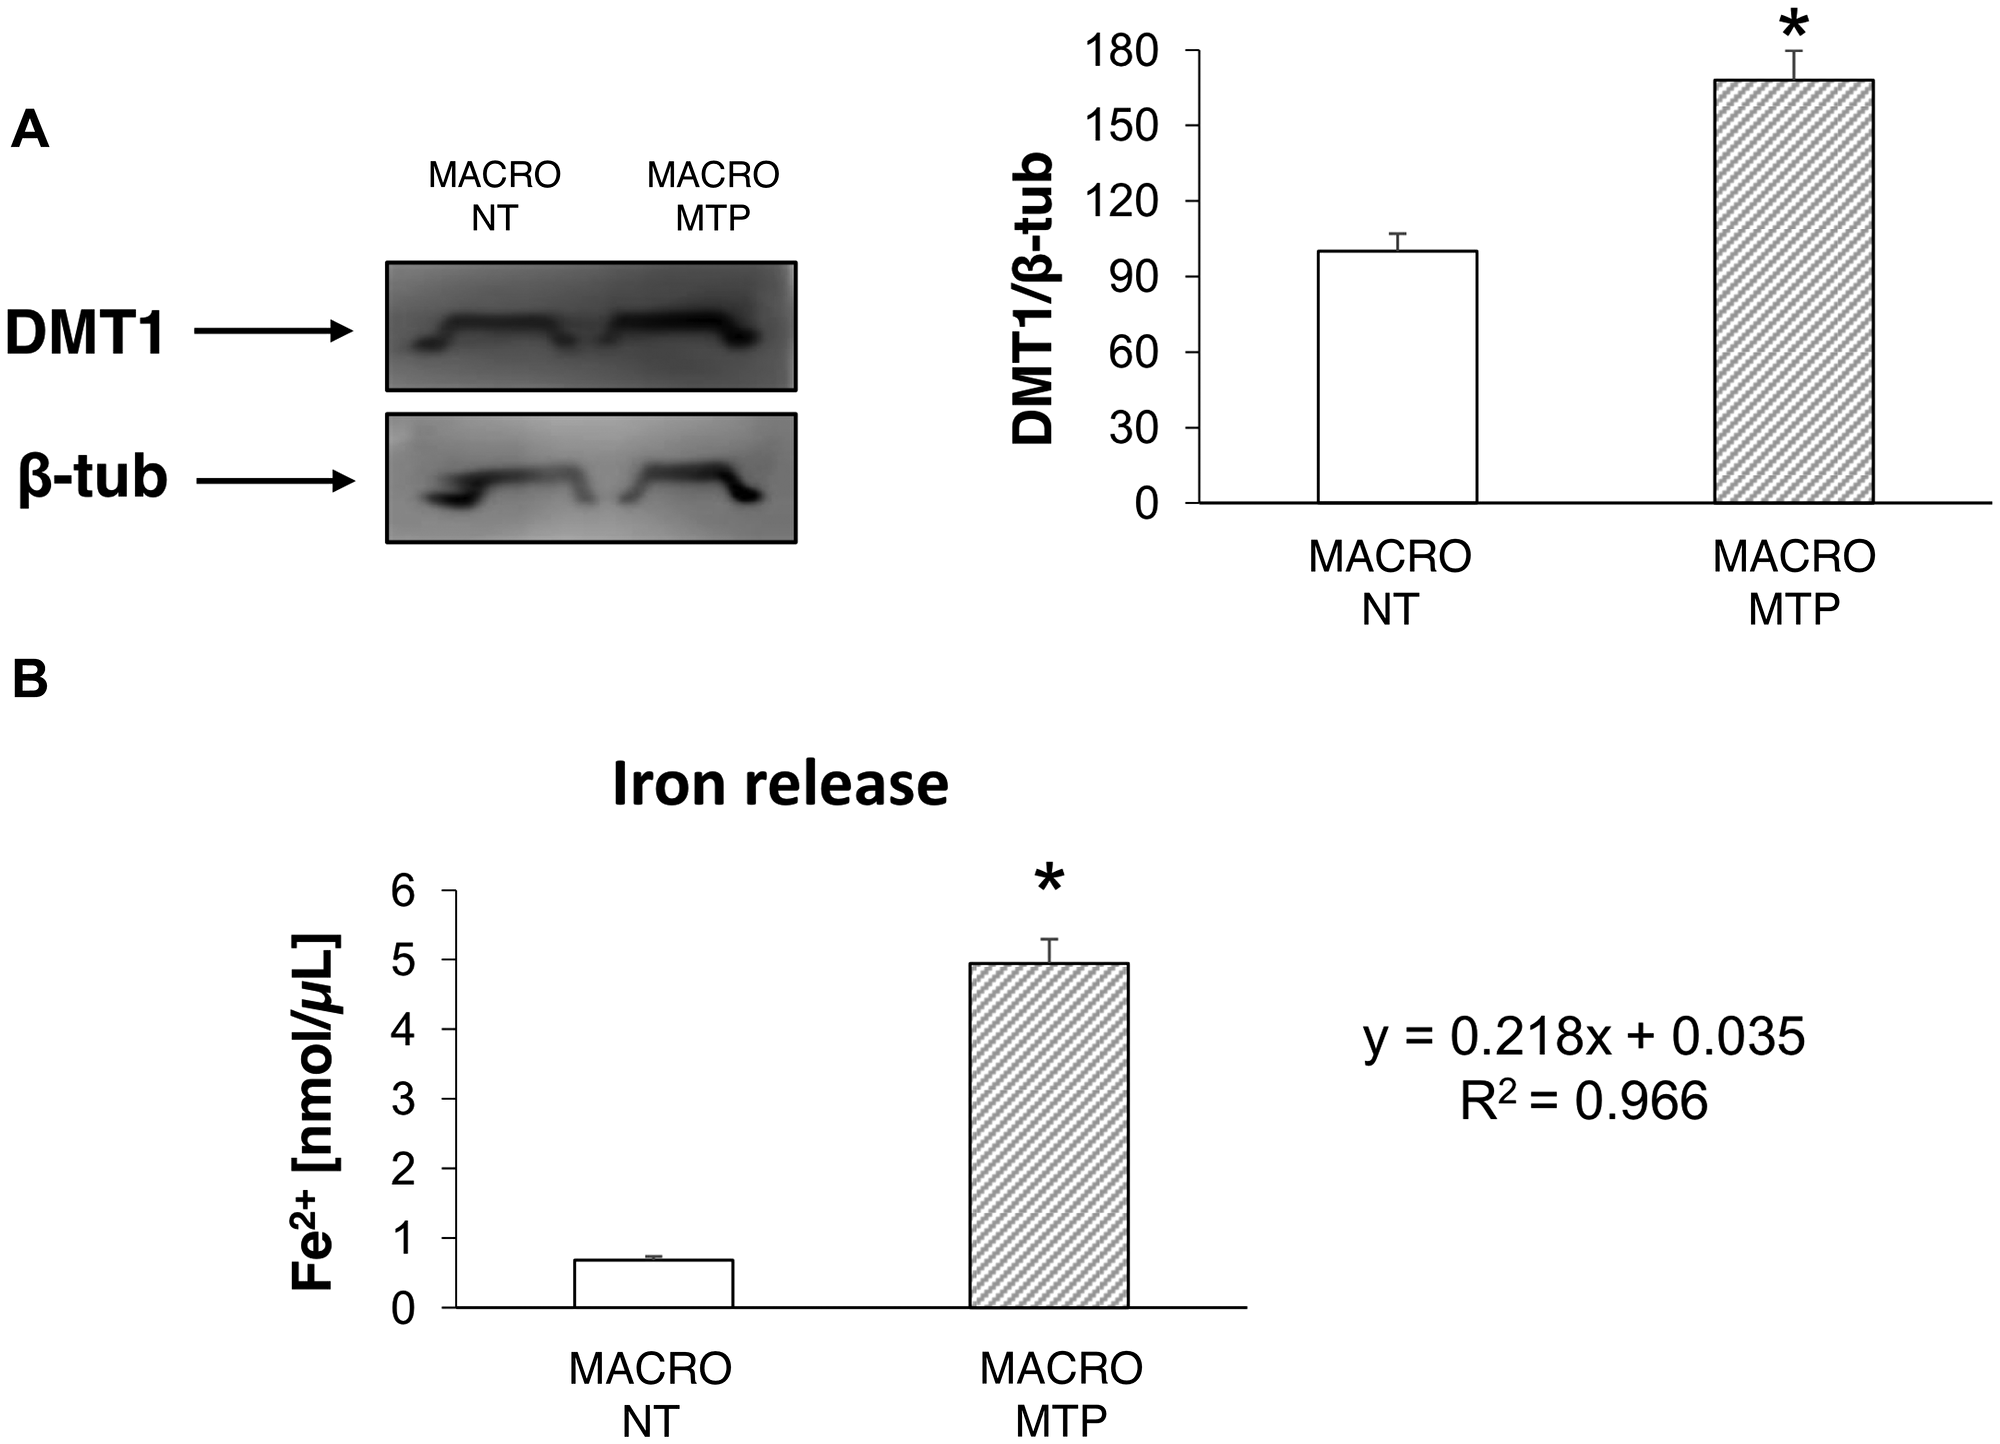 Effects of Mifamurtide (MTP) in macrophages on DMT1 expression and iron release.